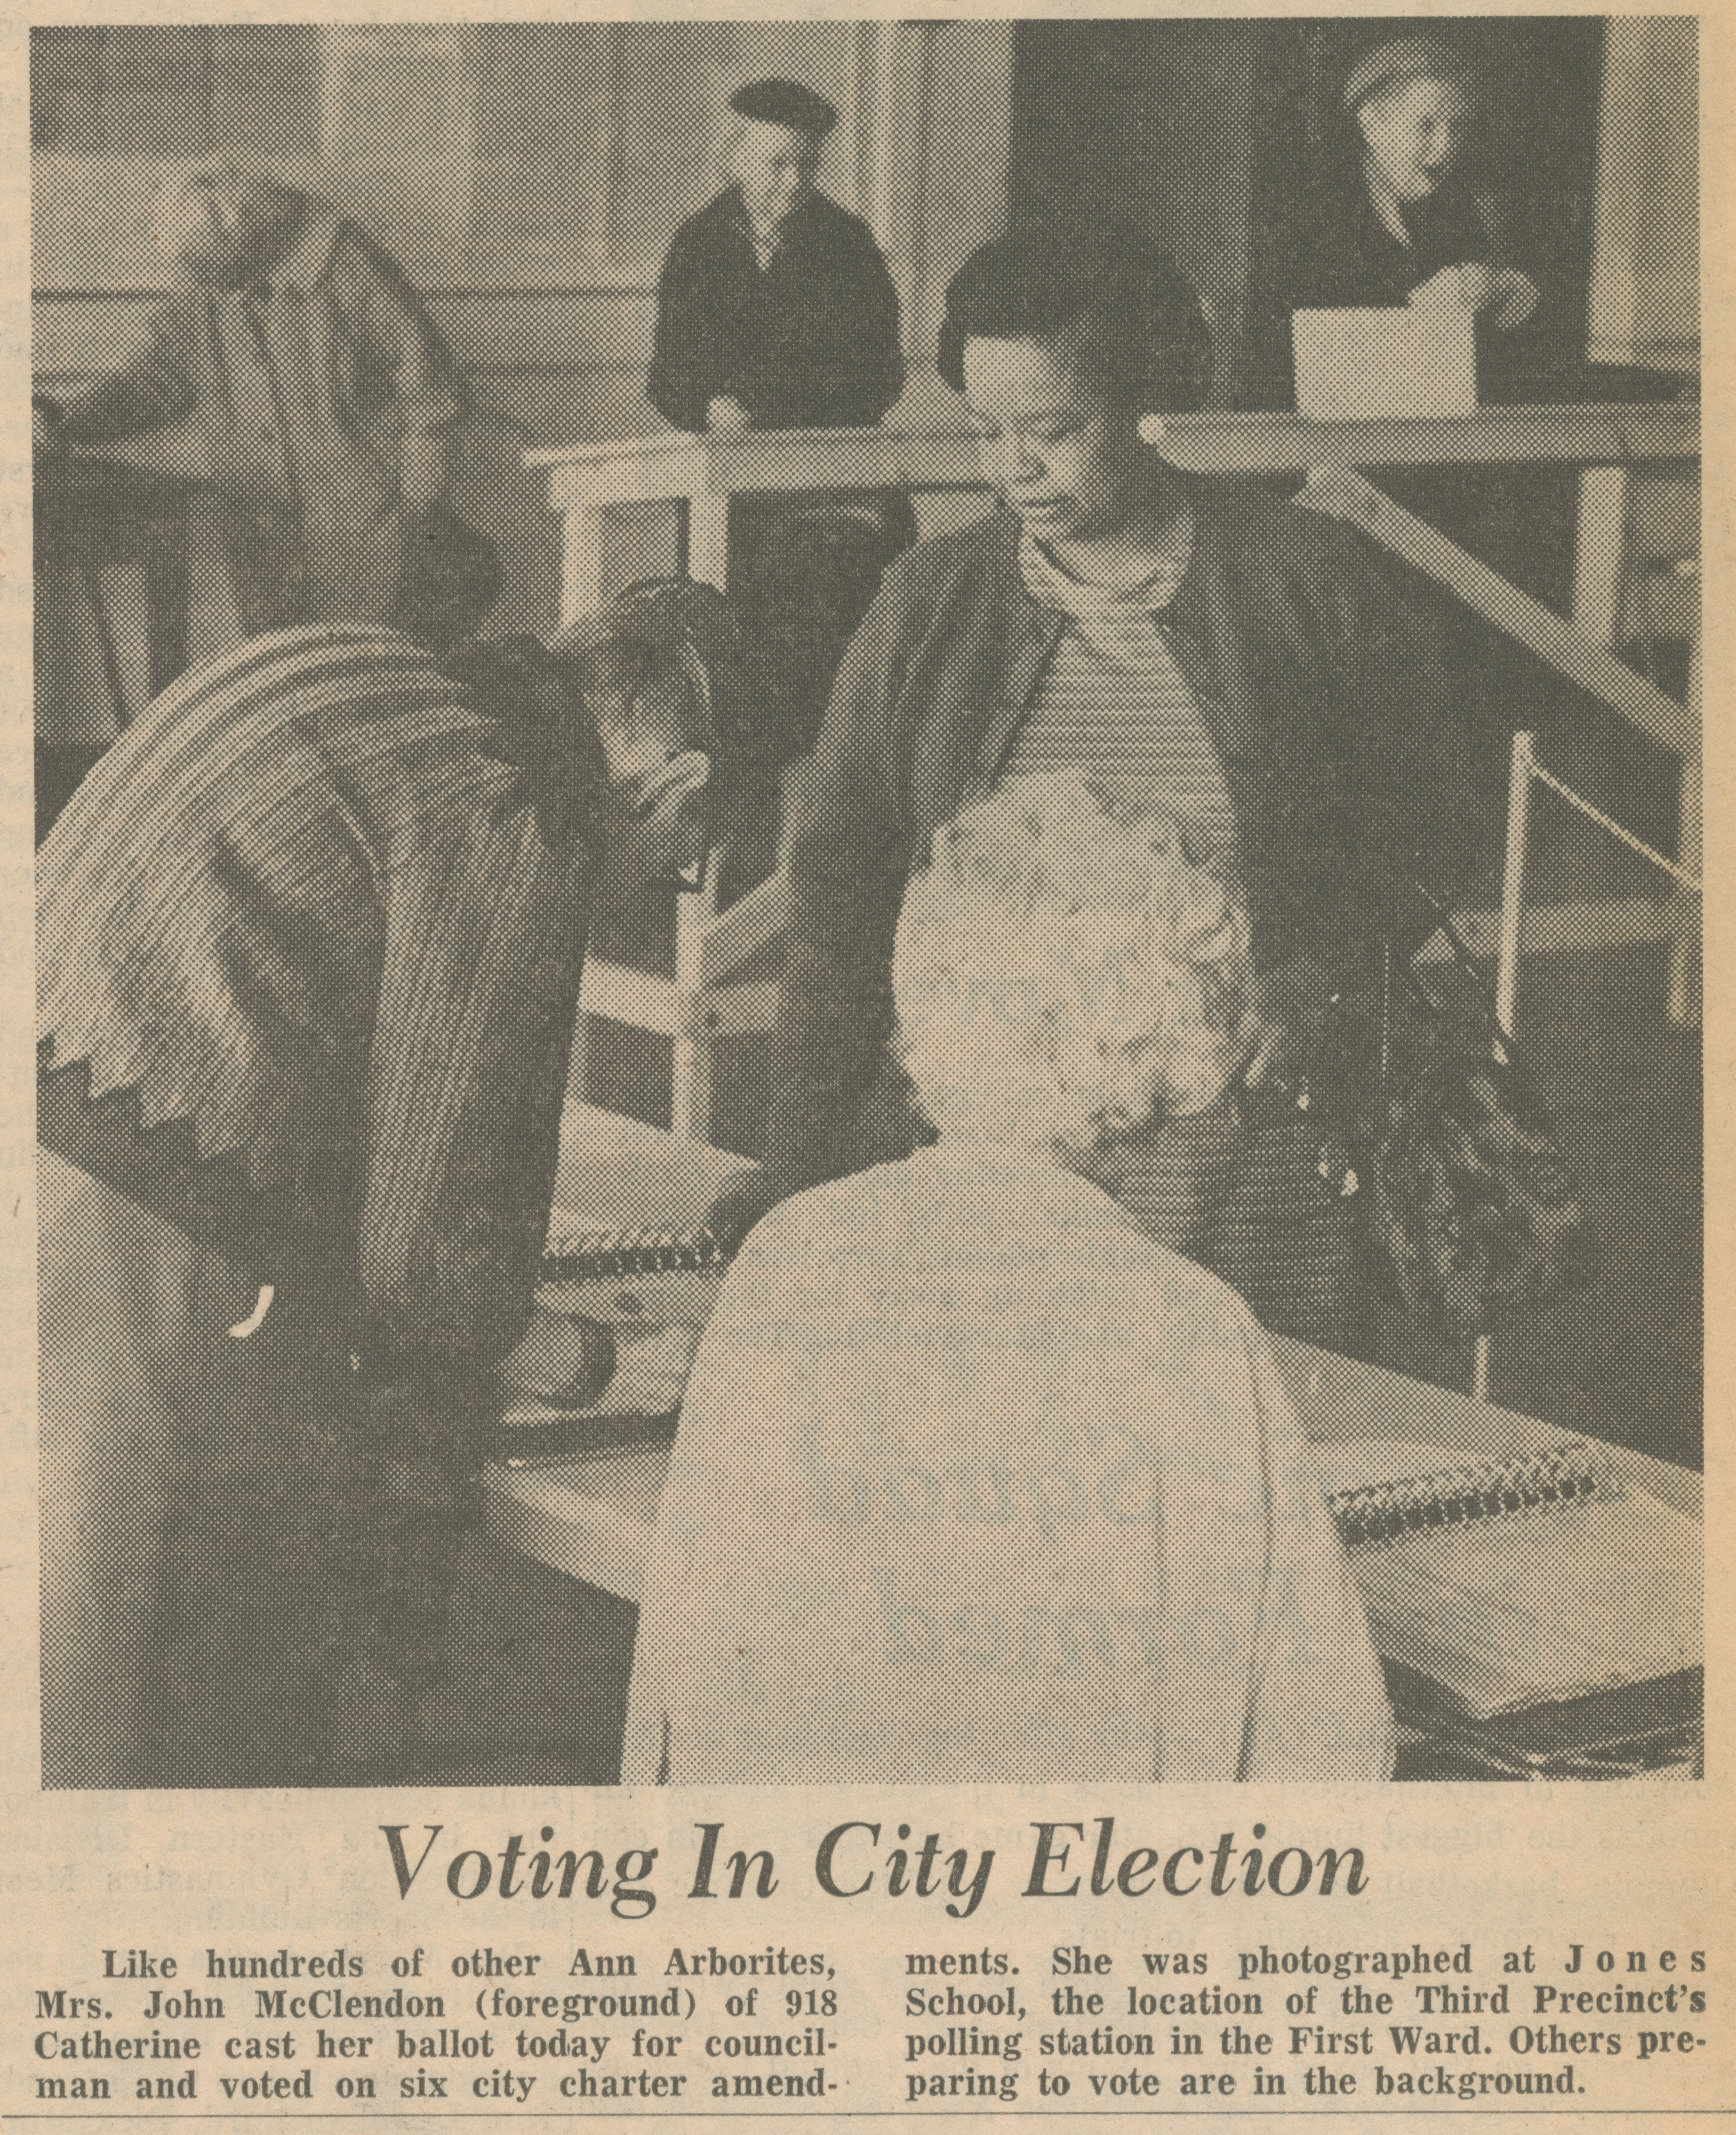 Voting In City Election image